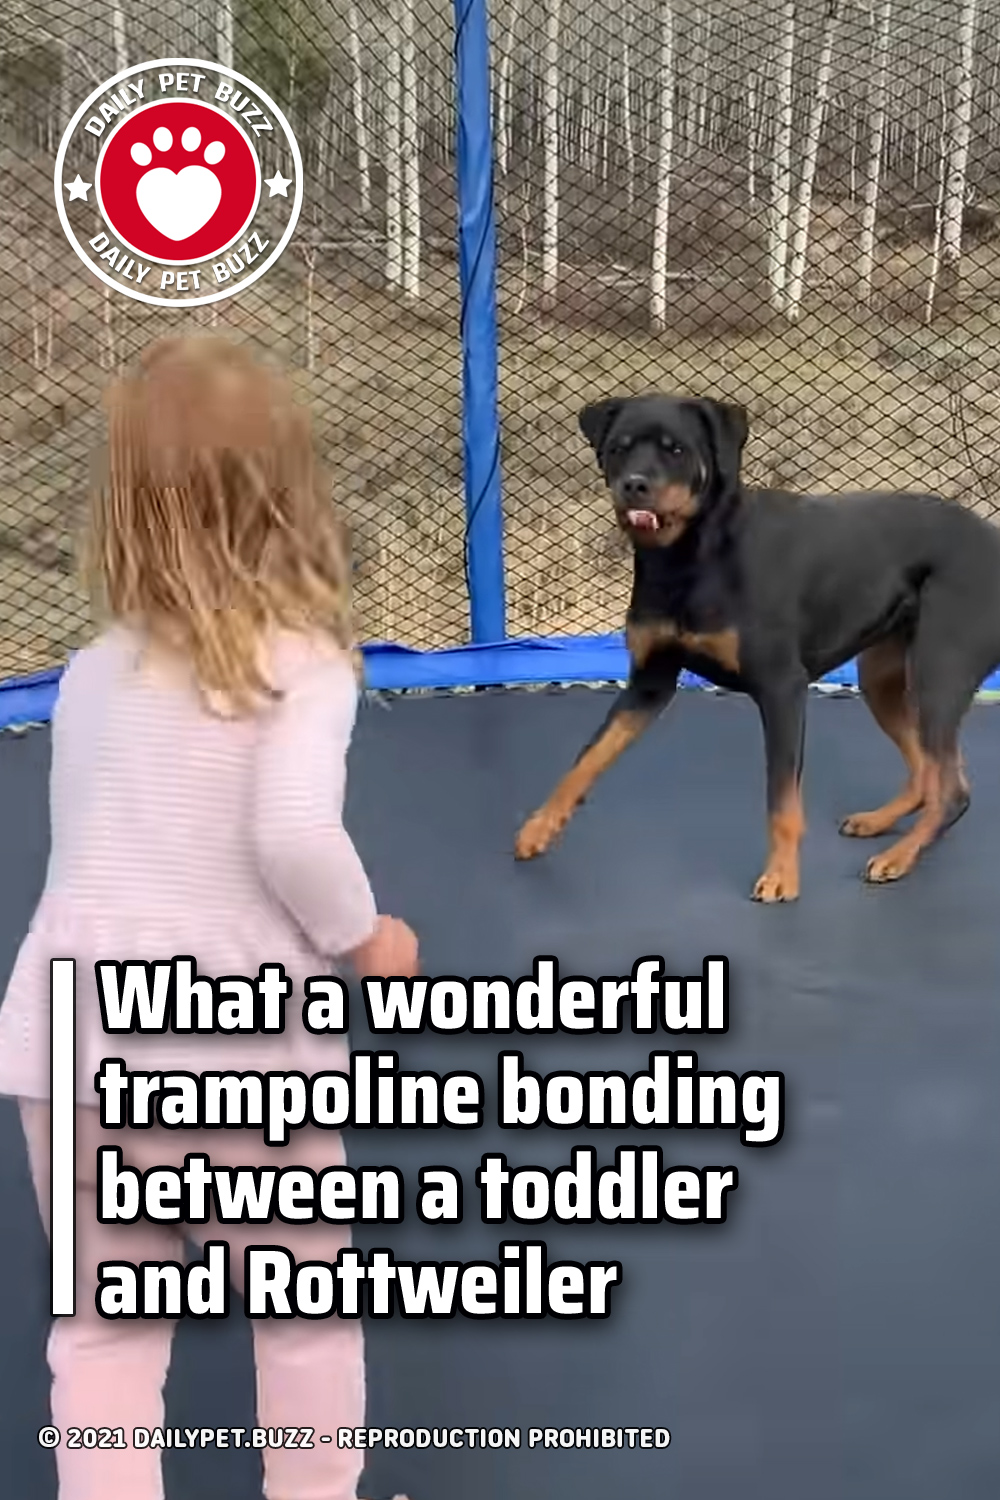 What a wonderful trampoline bonding between a toddler and Rottweiler